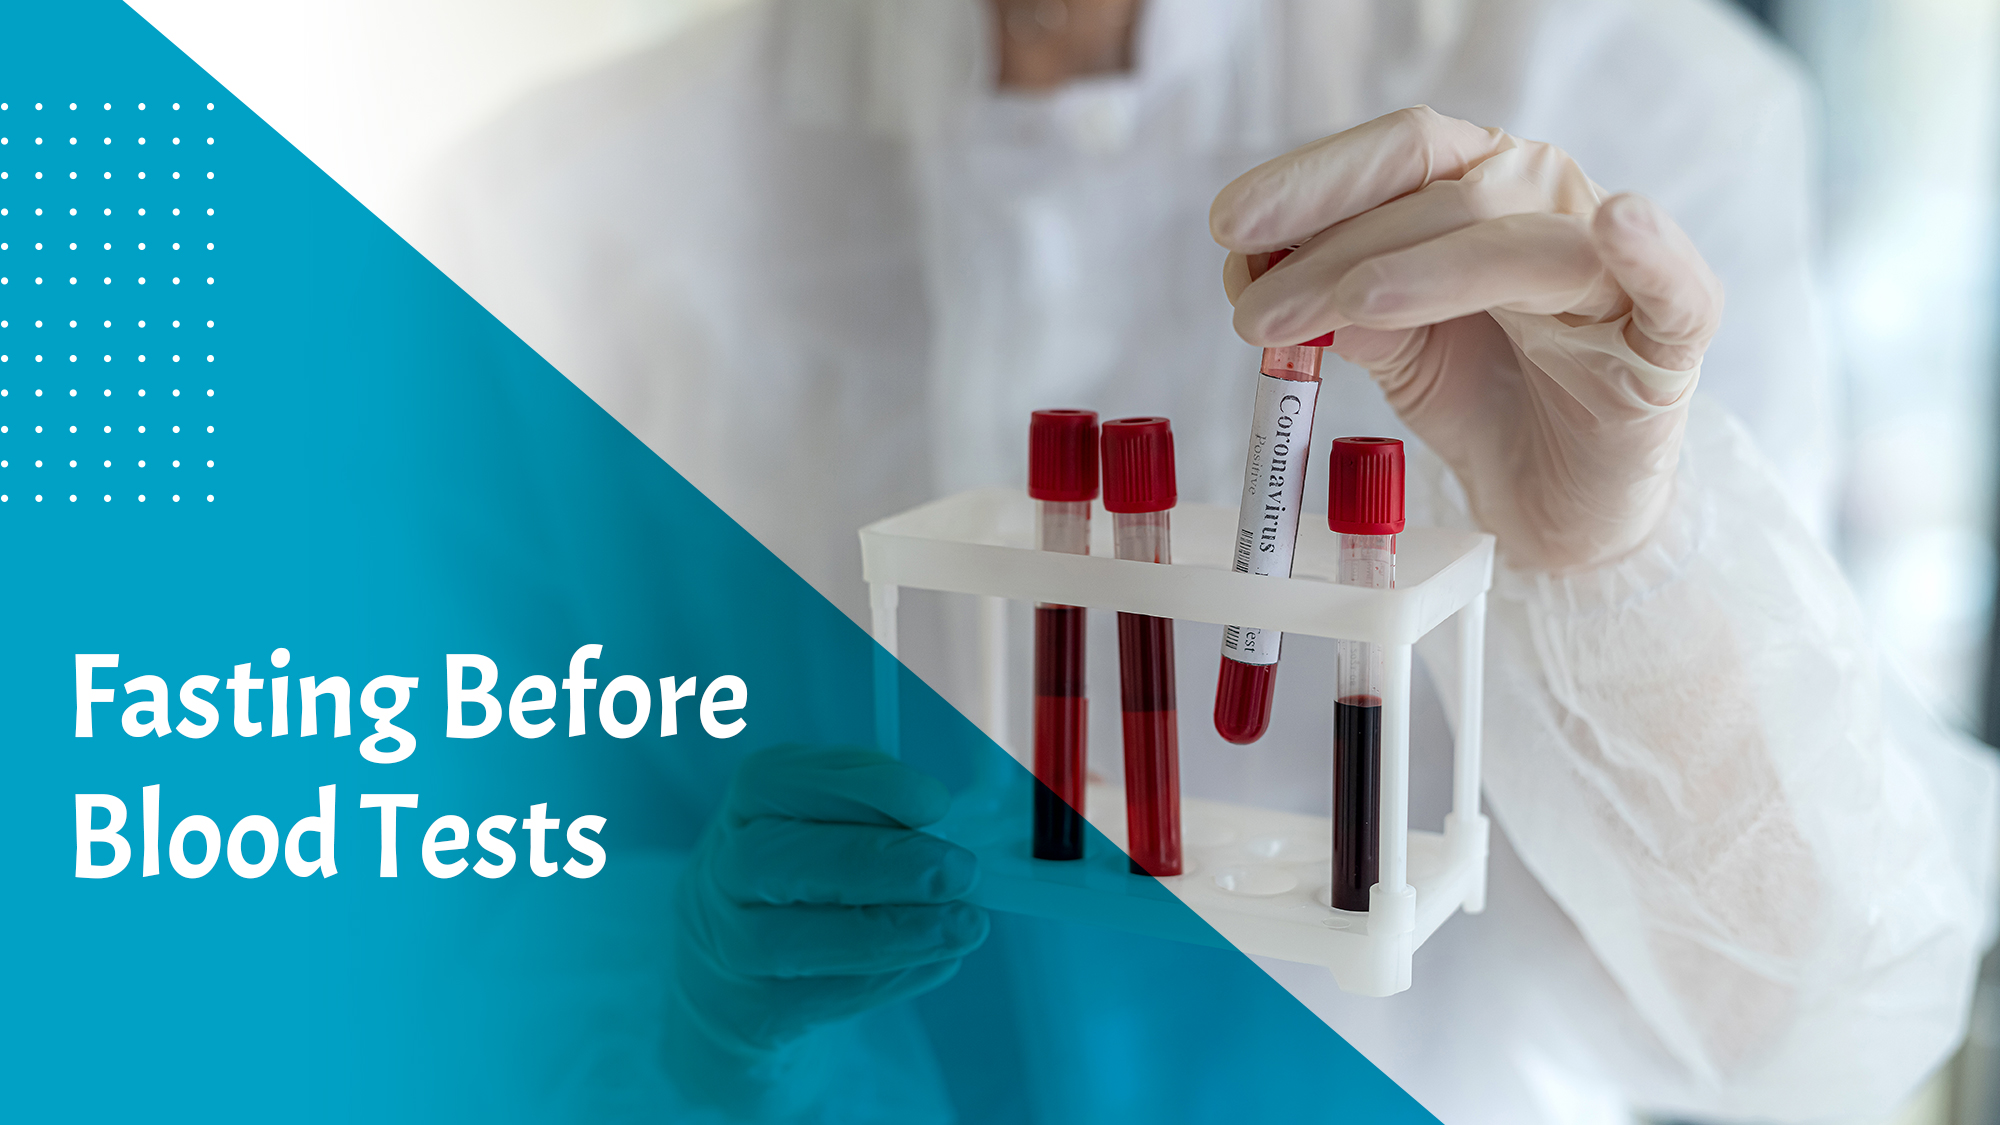 Fasting Before Blood Tests